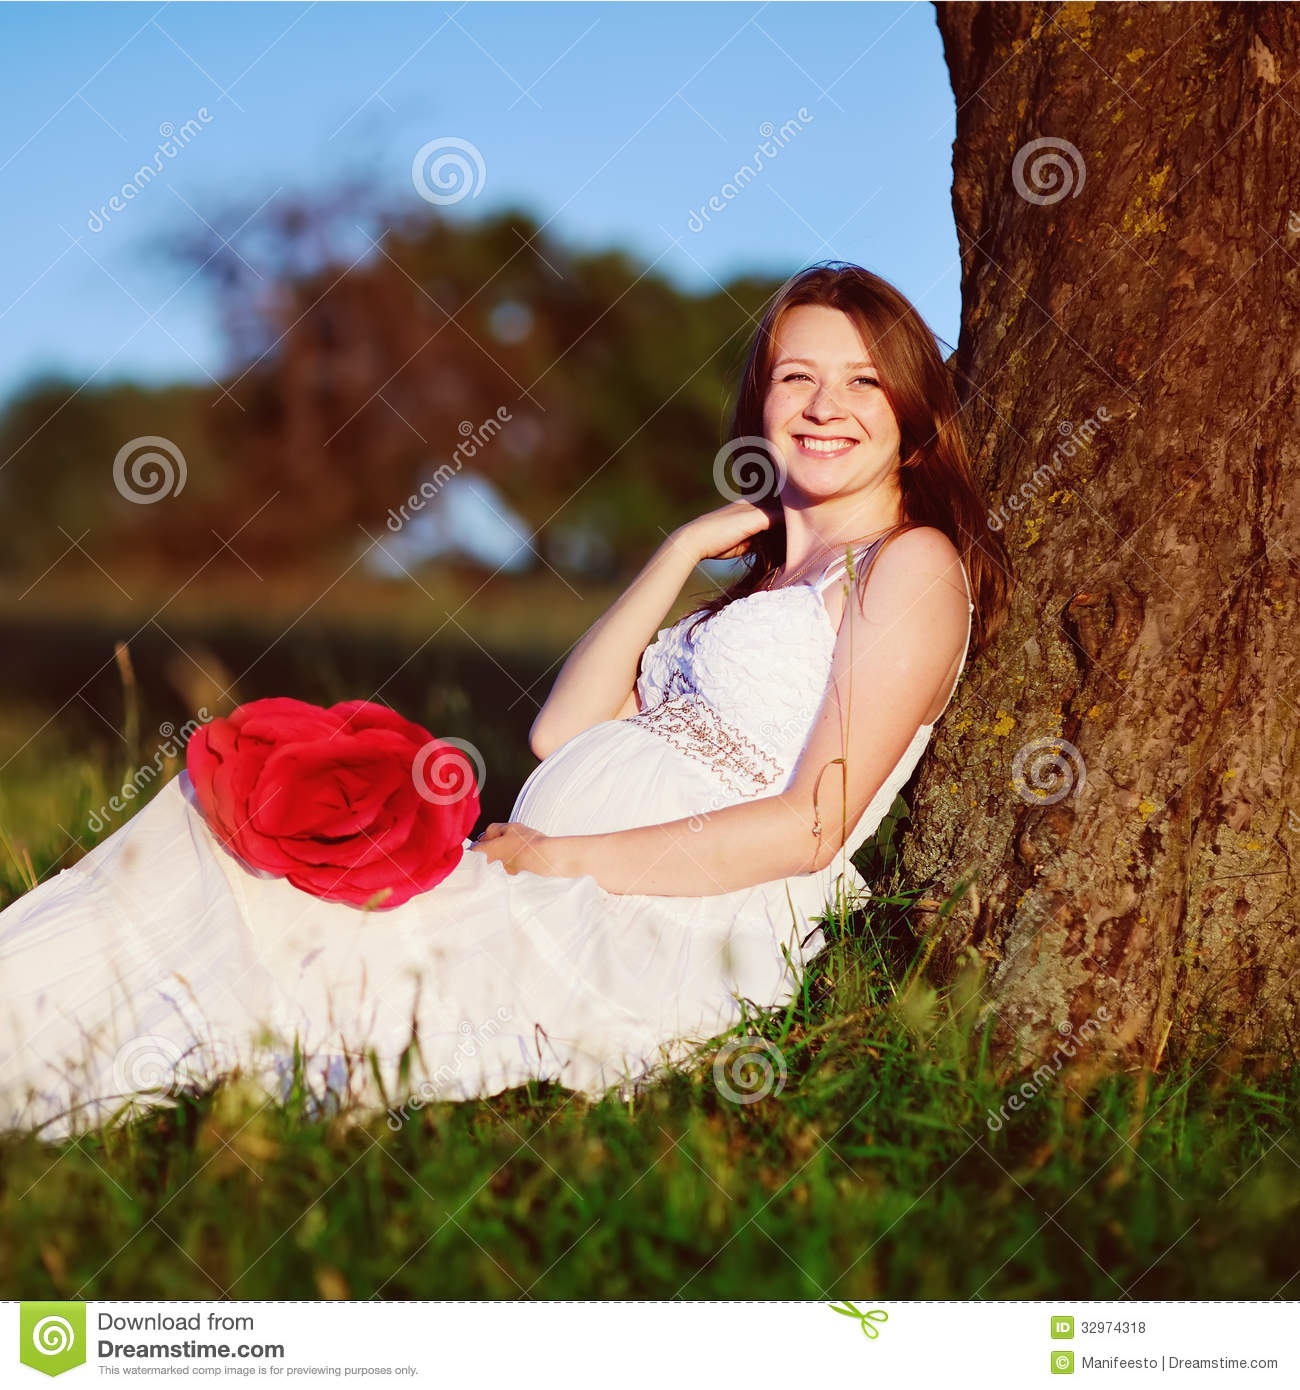 Pregnant woman in summer garden royalty free stock photos for Gardening while pregnant